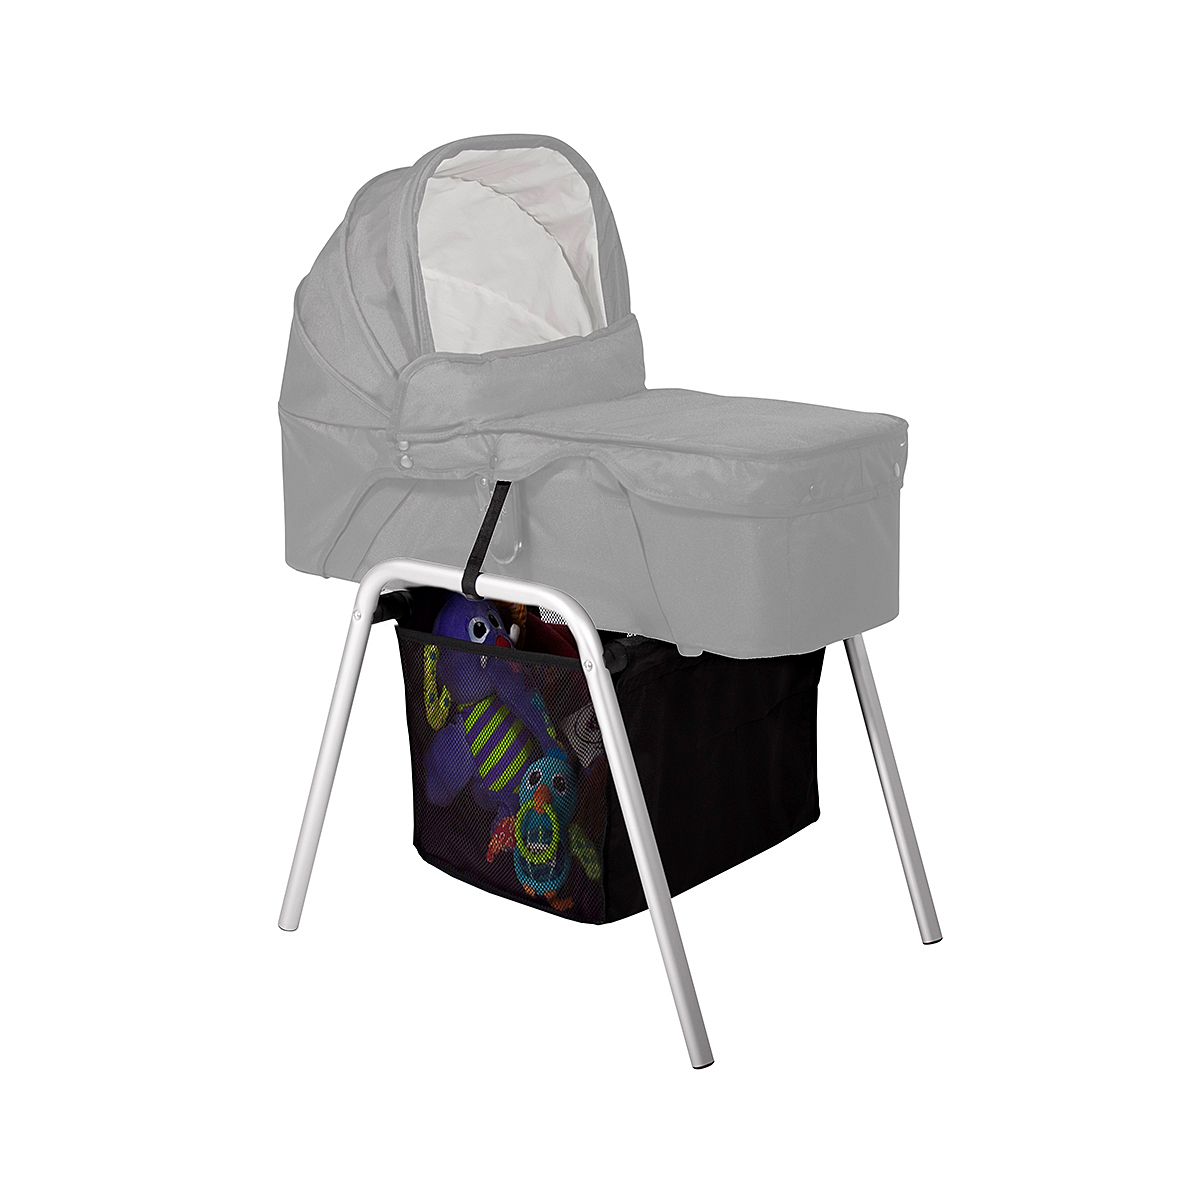 UNIVERSAL BASSINET STAND 2